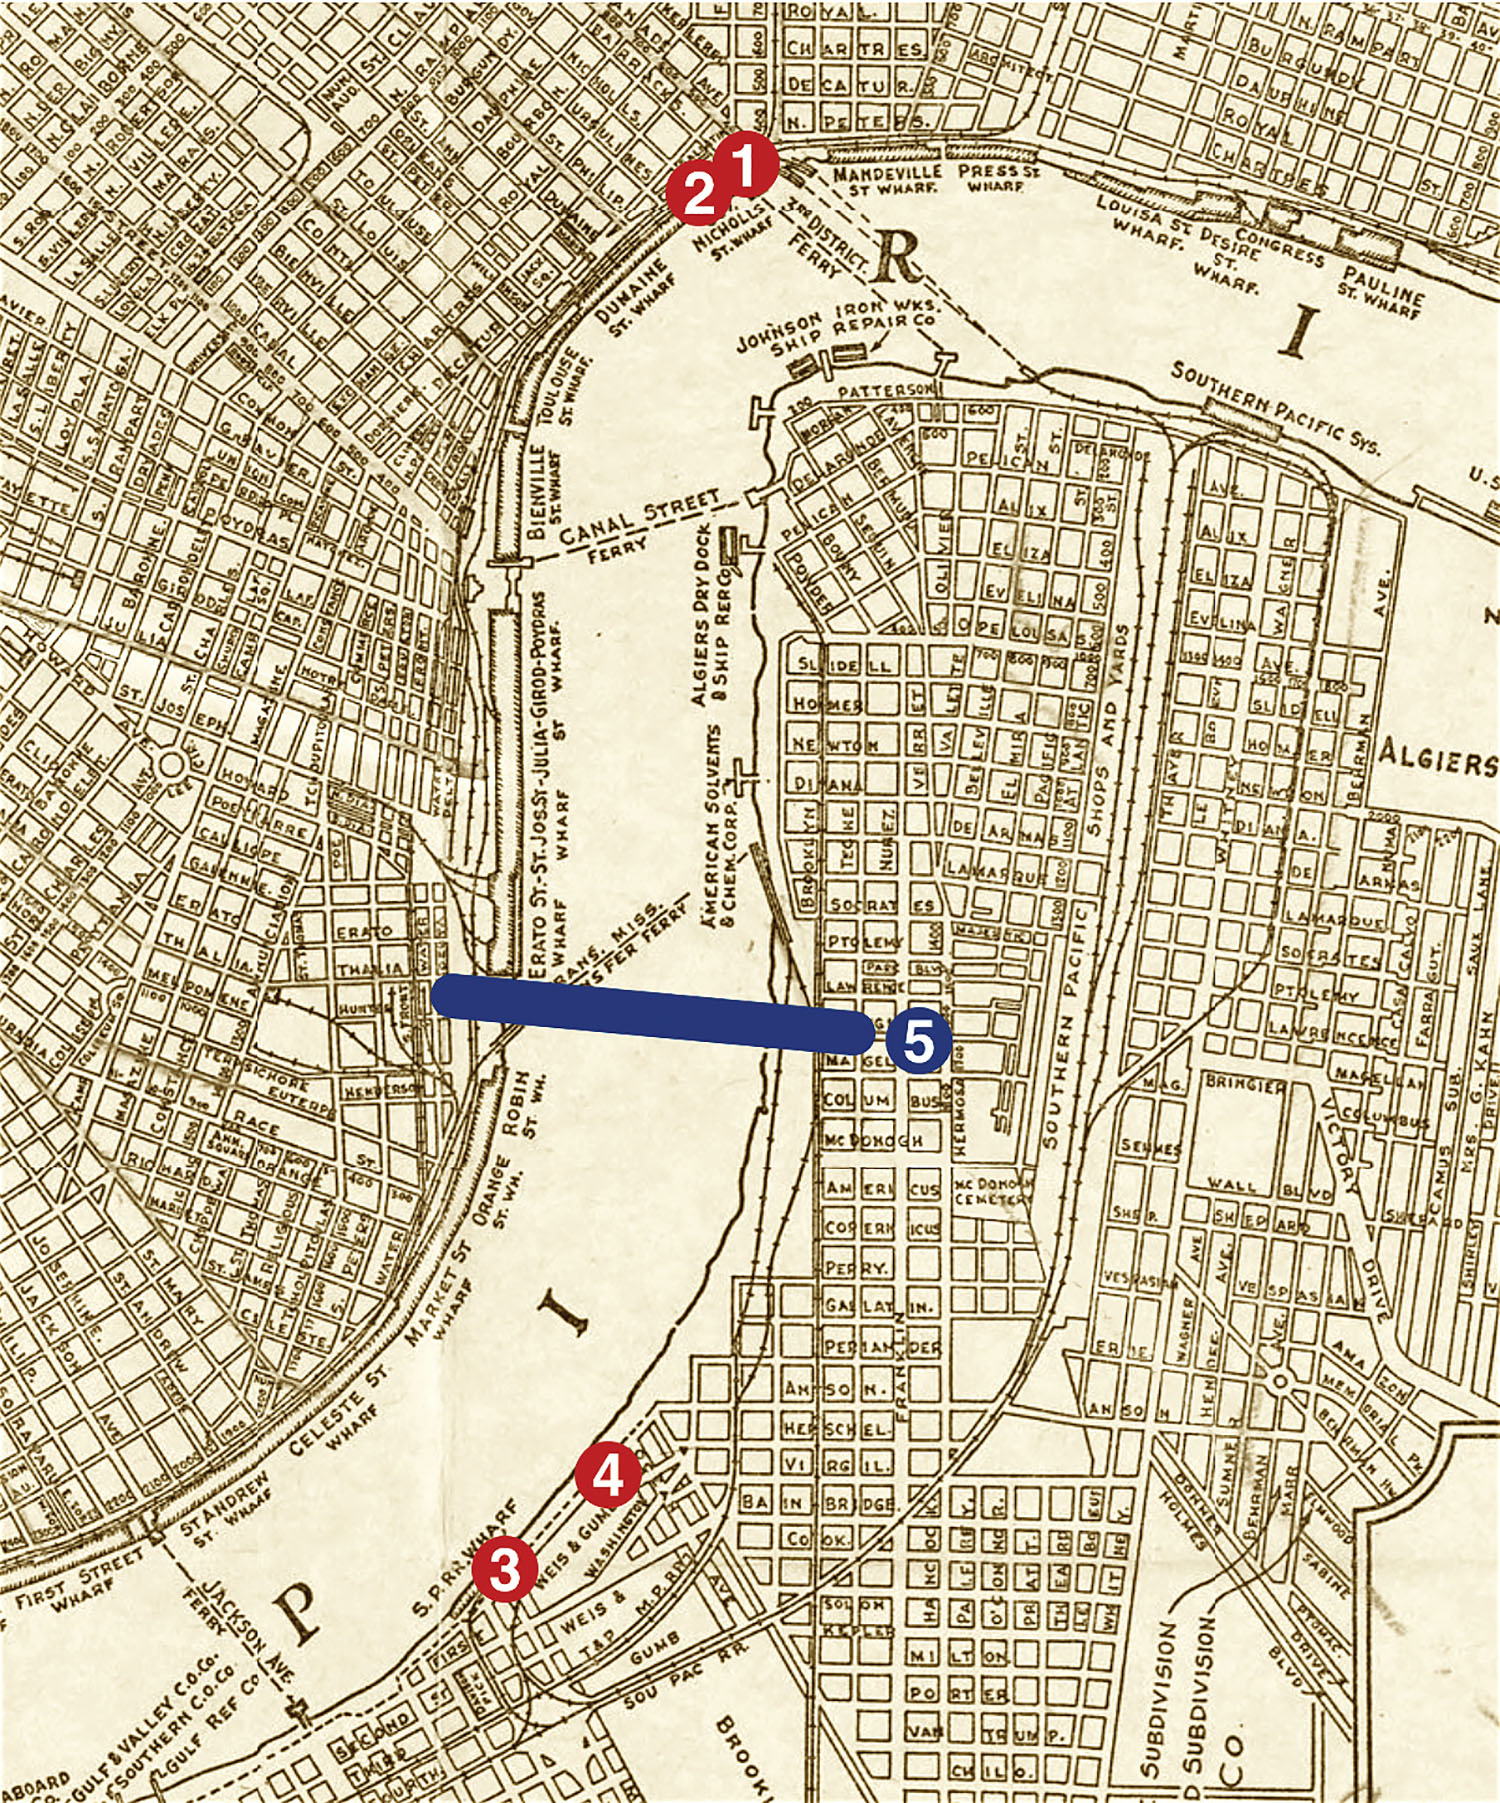 River traffic-related locations superimposed on a map of New Orleans published in 1931, one year before the first Algiers Point traffic control signals were installed. 1) Original Barracks Street Wharf traffic light. 2) Present-day Governor Nick. 3) Original Gretna Light. 4) Present-day Gretna Light. 5) Crescent City Connection bridges.